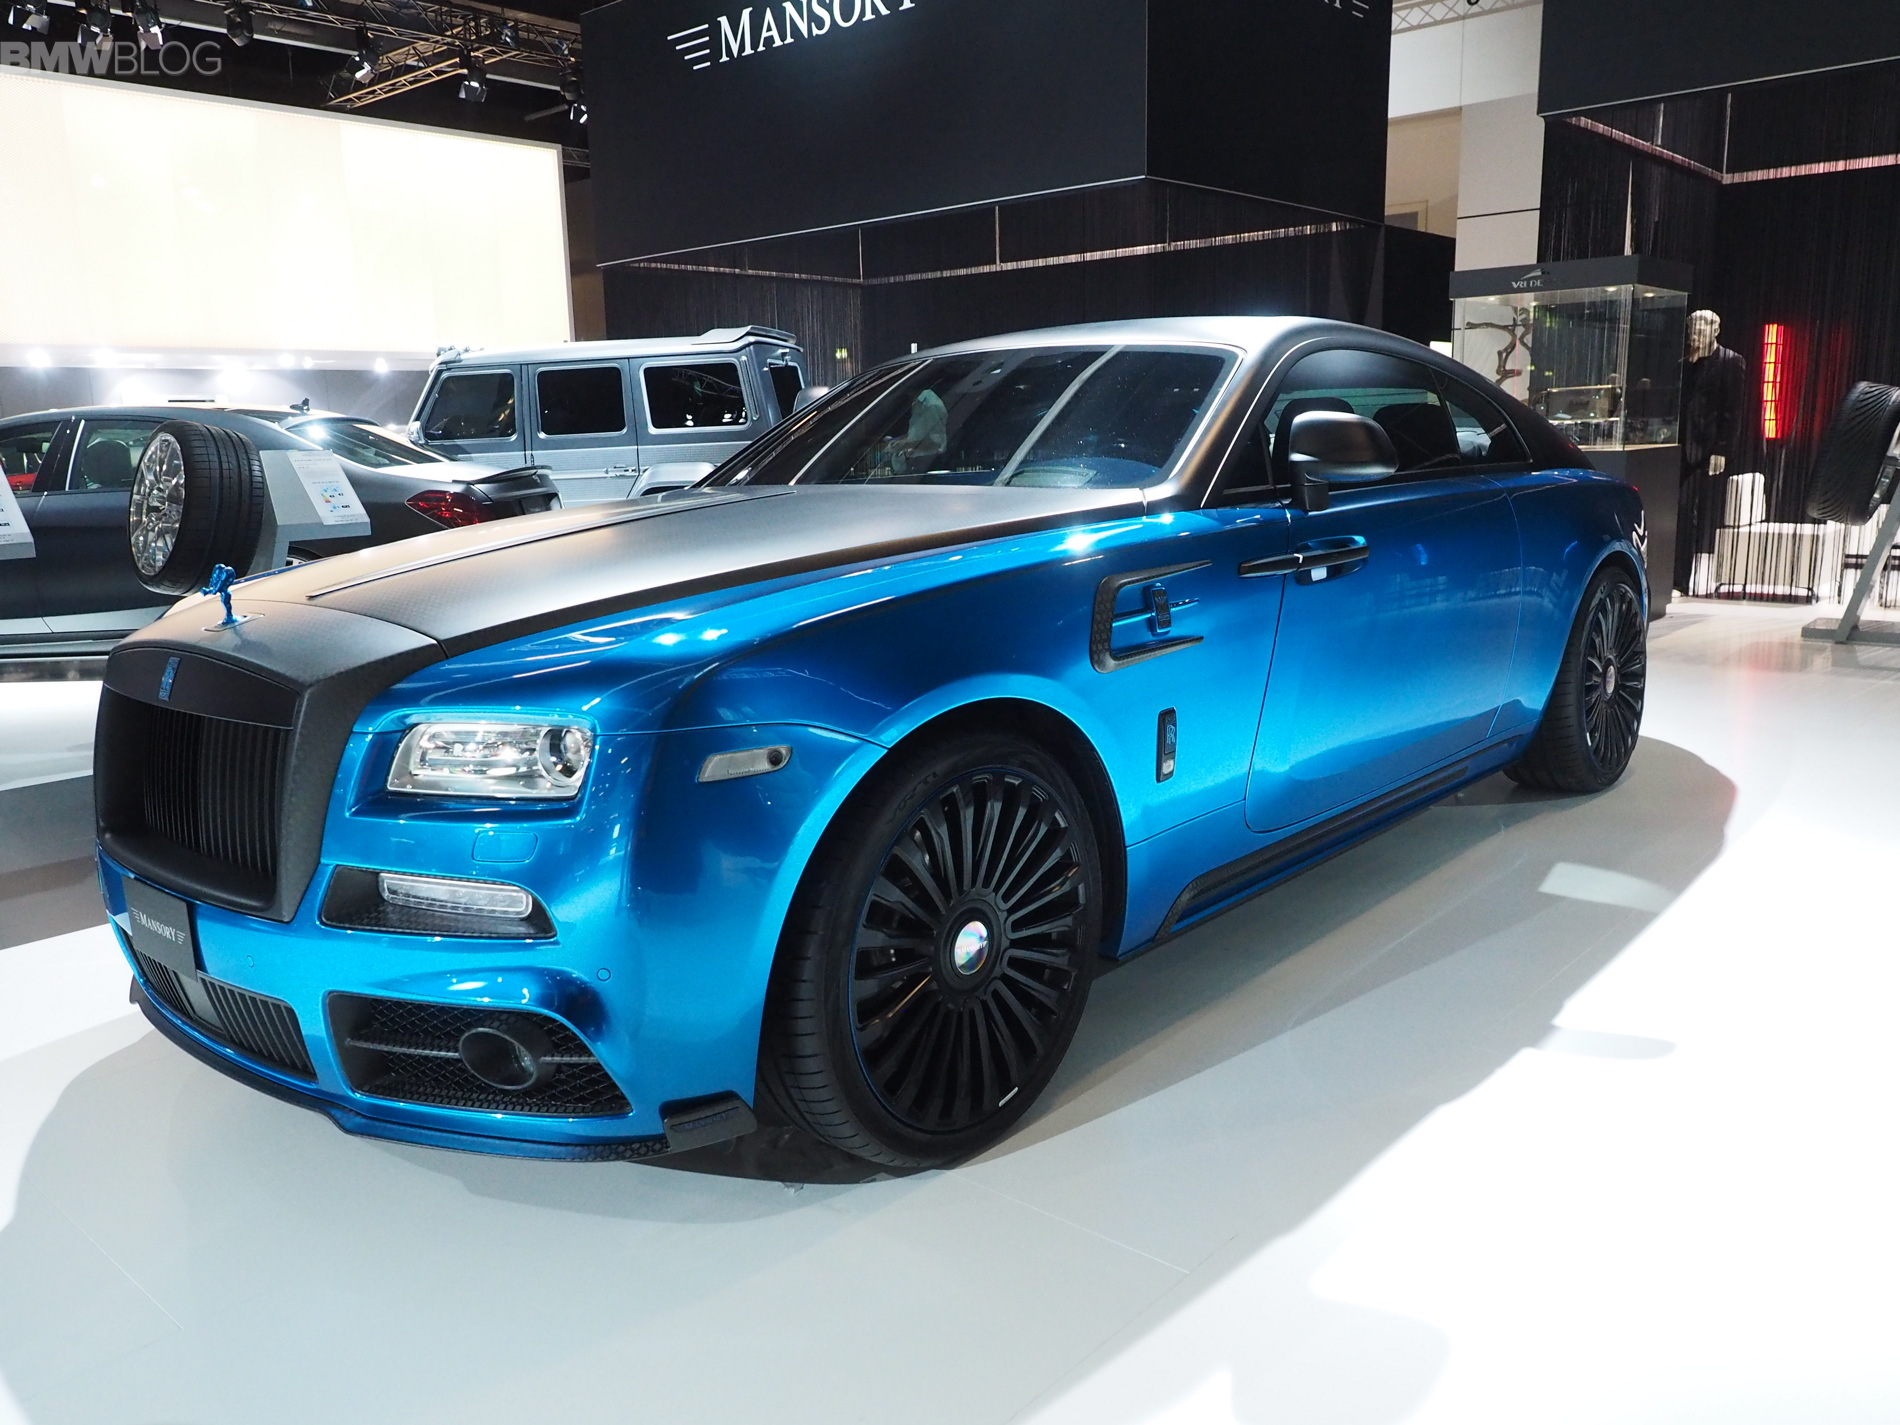 Mansory Brings A Custom Painted Rolls Royce And A Carbon Fiber Lamborghini To Frankfurt